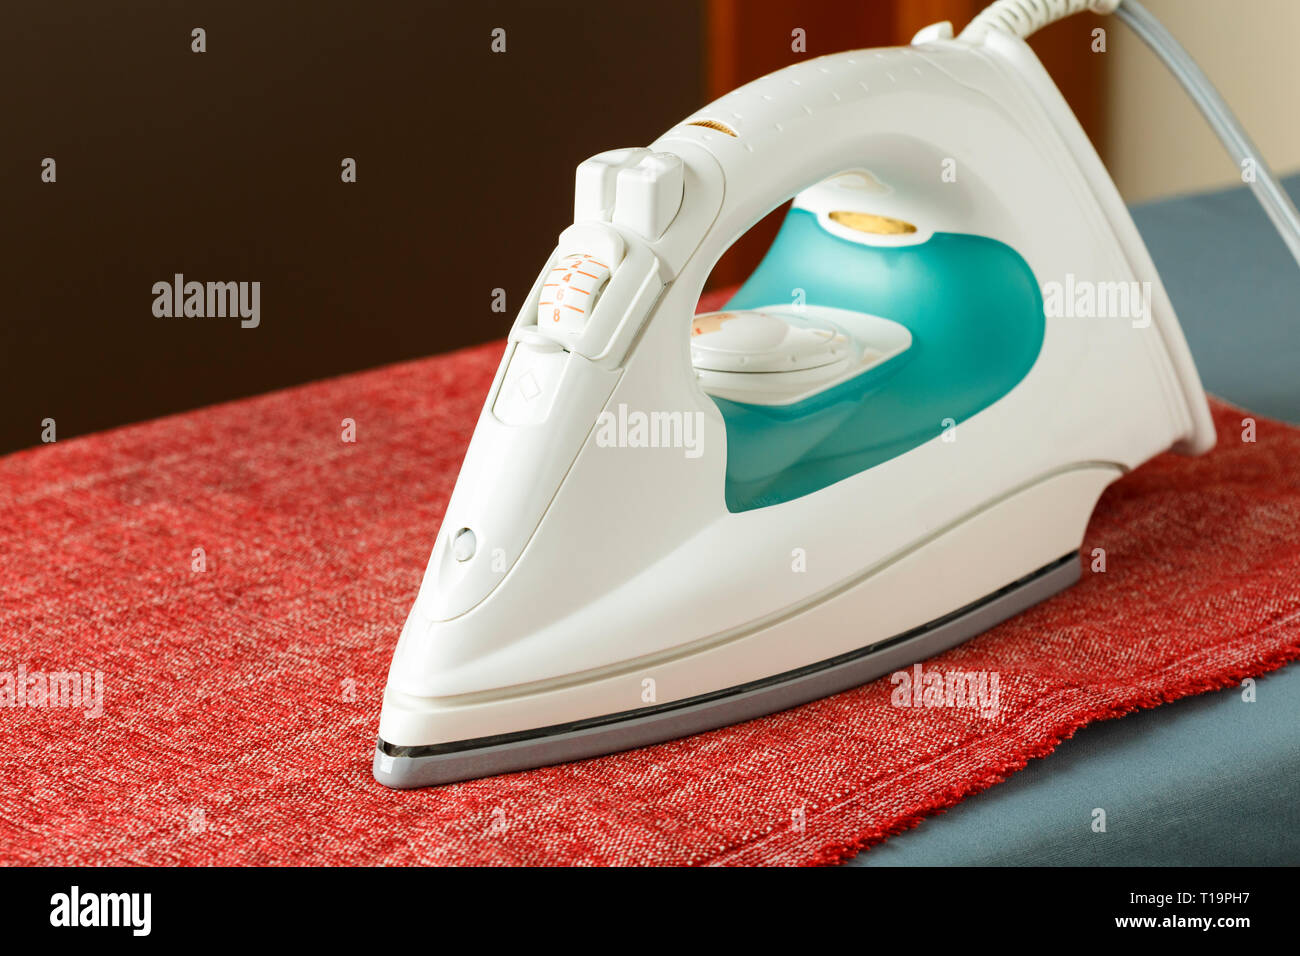 Steam iron resting on cloth fabric on ironing board. Small home electrical appliances housework laundry chores concepts. Ergonomic industrial design. - Stock Image